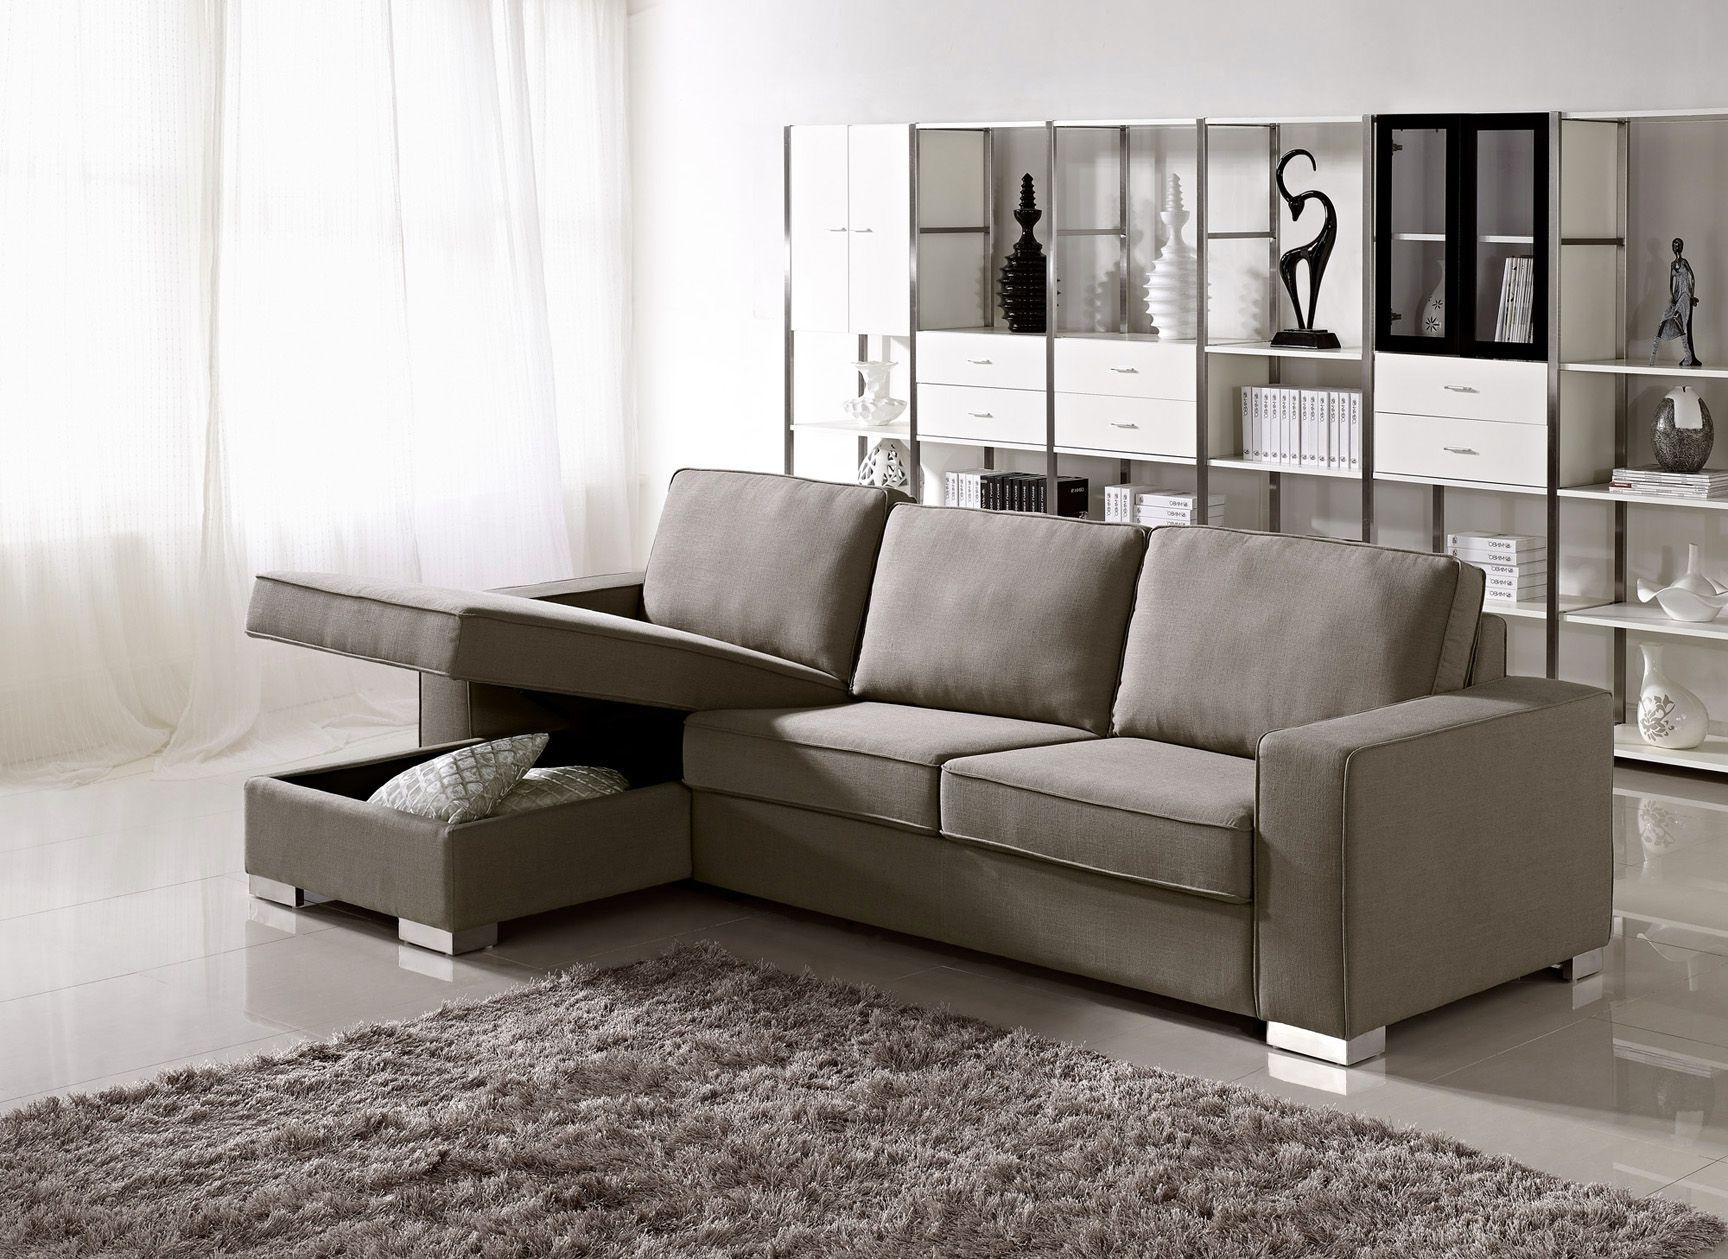 Sleeper Sofas With Chaise Lounge Regarding Preferred Leather Armchair And Ottoman Chaise Sofa With Storage Ottoman (View 15 of 15)